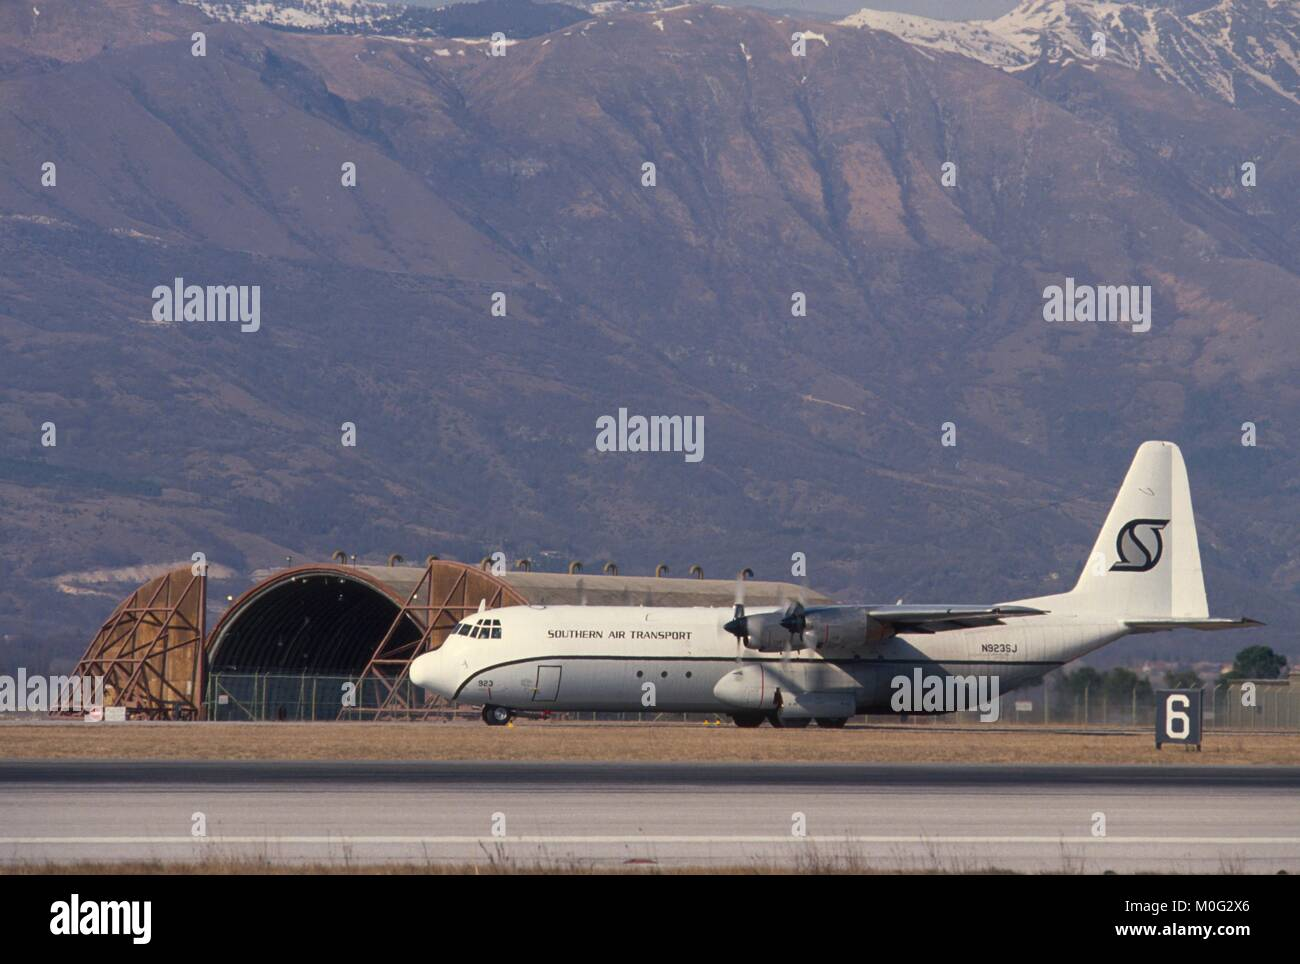 C 130 transport aircraft of the civil company Southern Air Transport in the US Air Force base of Aviano (north Italy); - Stock Image